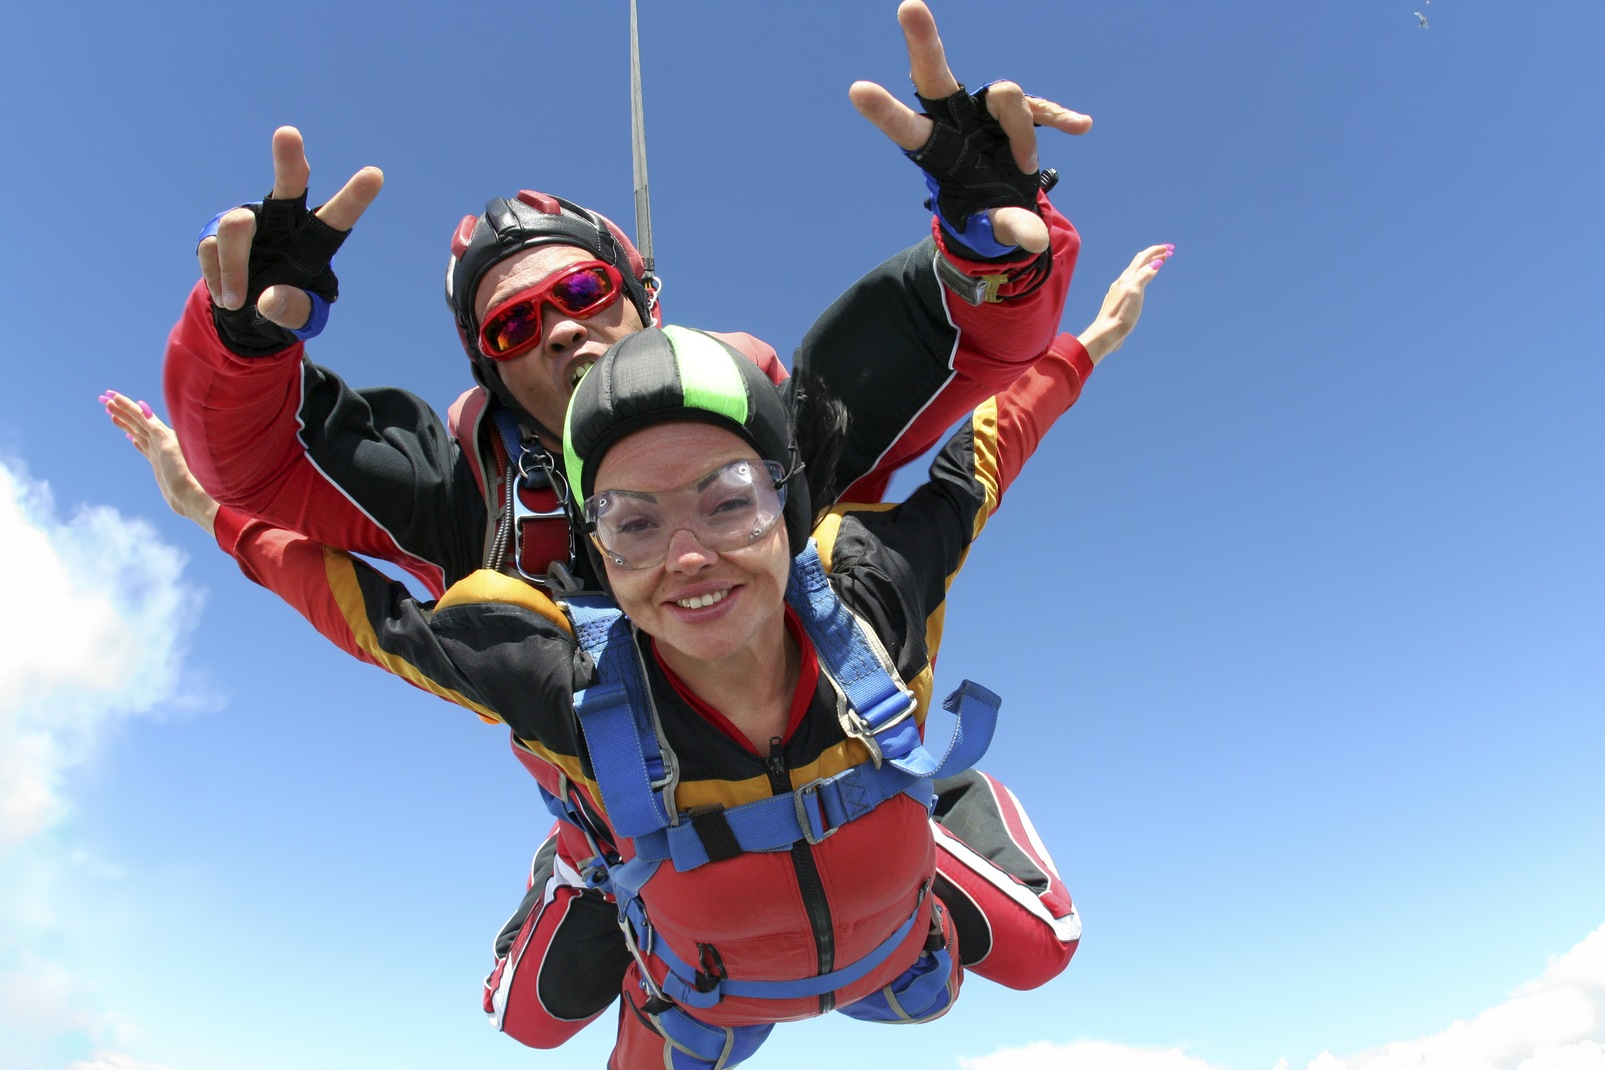 DeLand, FL: The Skydiving Capital of the World